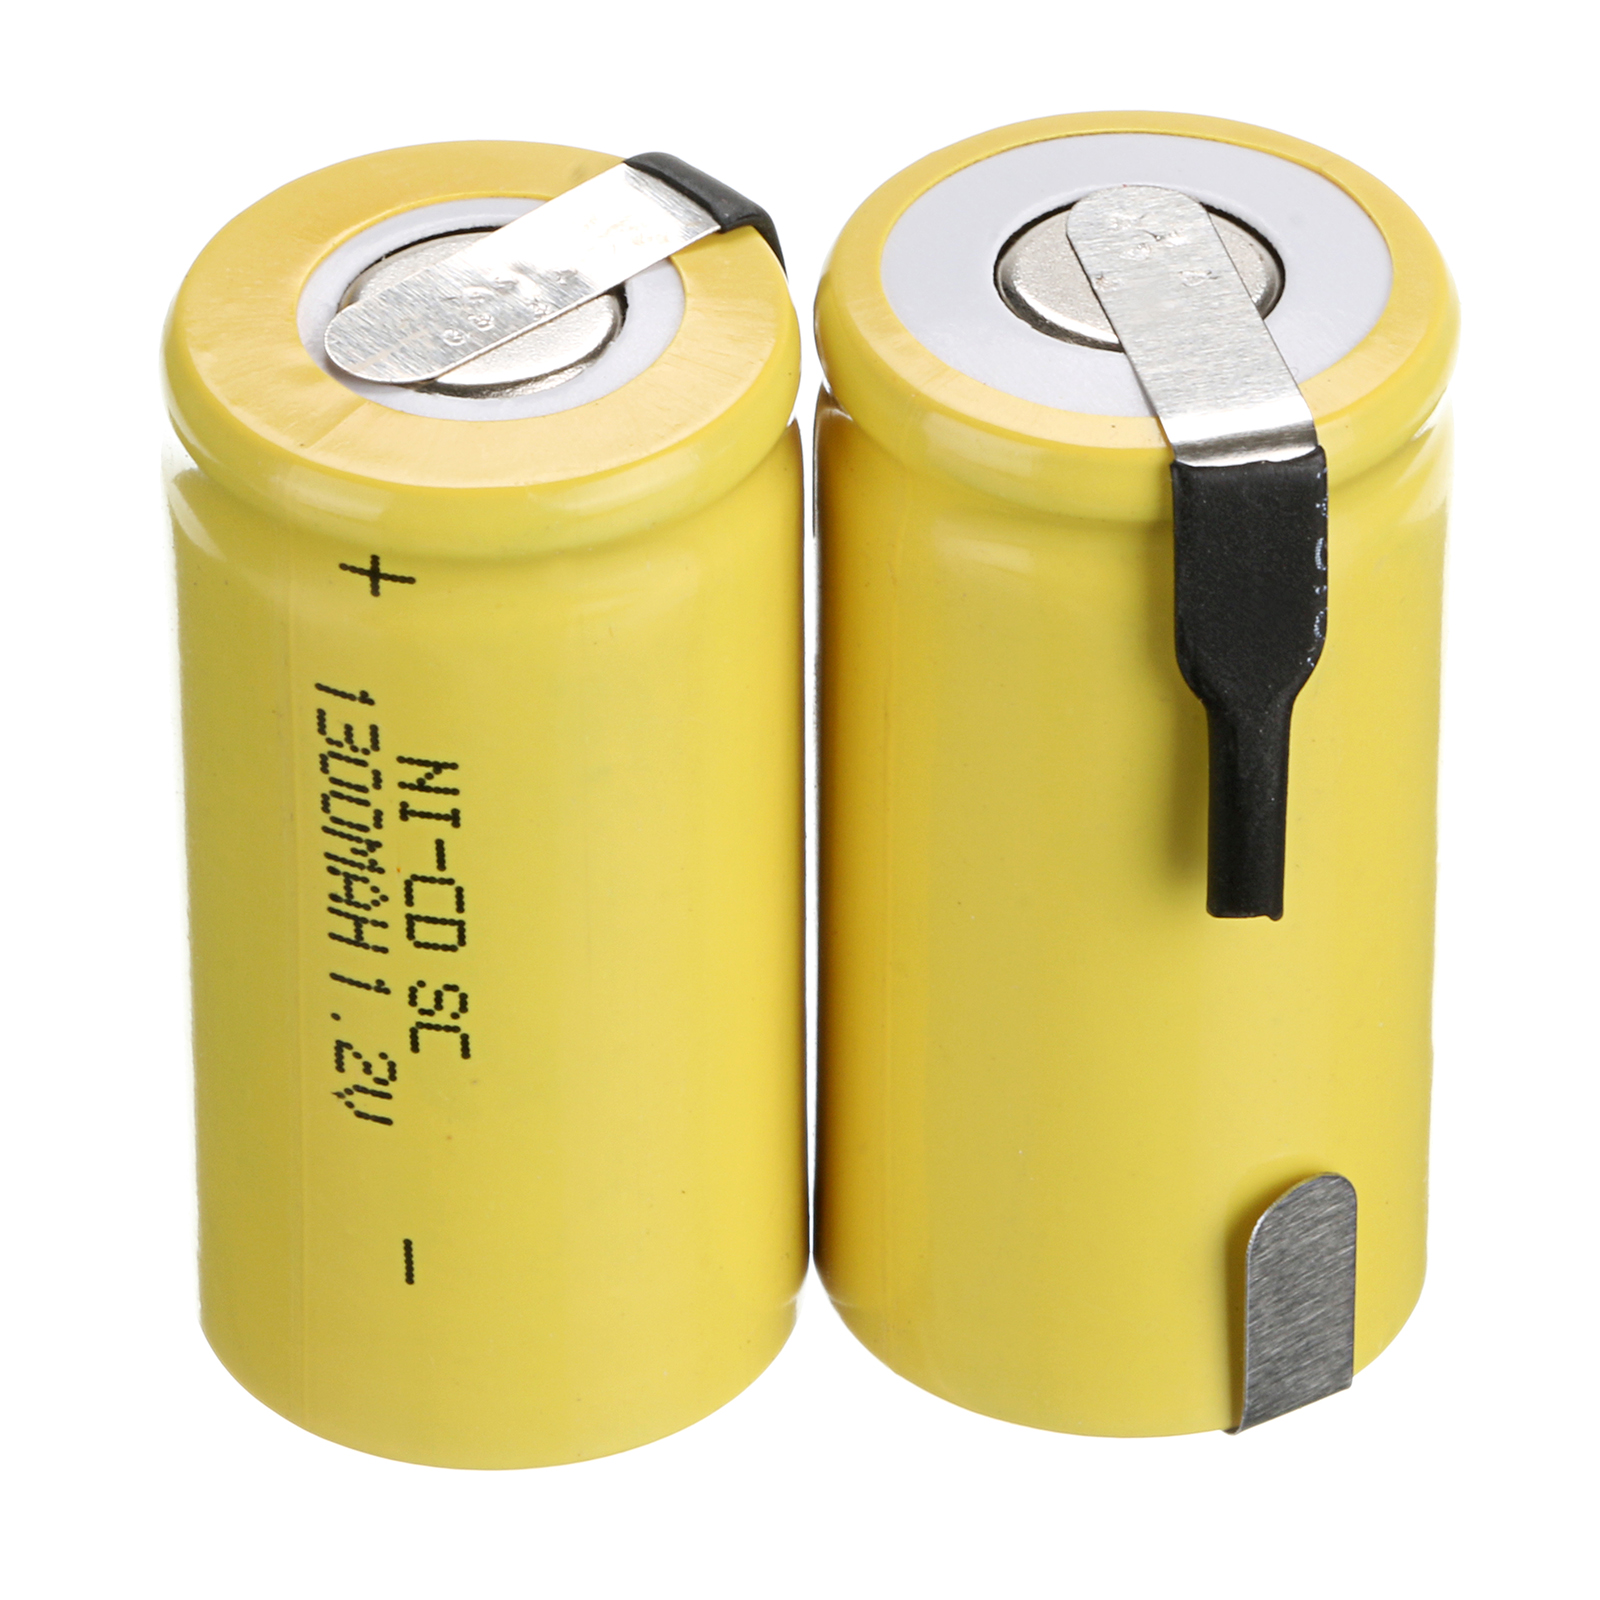 2~16PCS 1300mAh nicd 1.2v battery sub c sc <font><b>1.2</b></font> <font><b>v</b></font> <font><b>ni</b></font>-<font><b>cd</b></font> <font><b>ni</b></font> <font><b>cd</b></font> rechargeable batteries yellow image